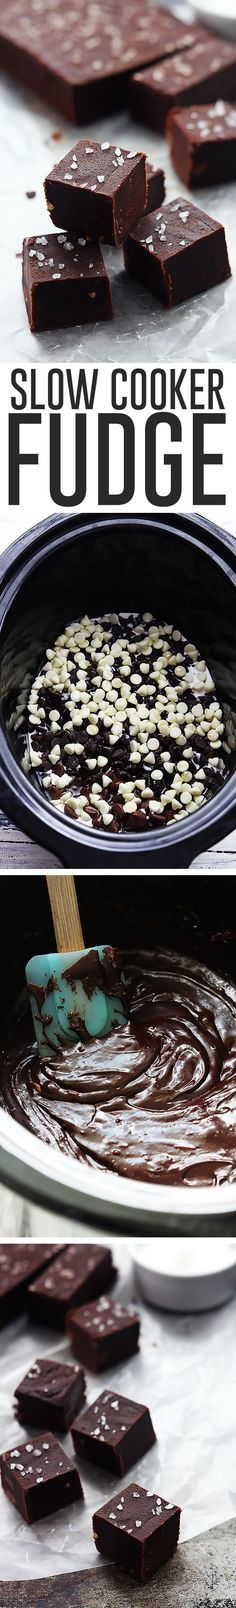 Creamy, easy homemade fudge made right in your crock pot! Top it with coarse sea salt for extra richness and elegance!